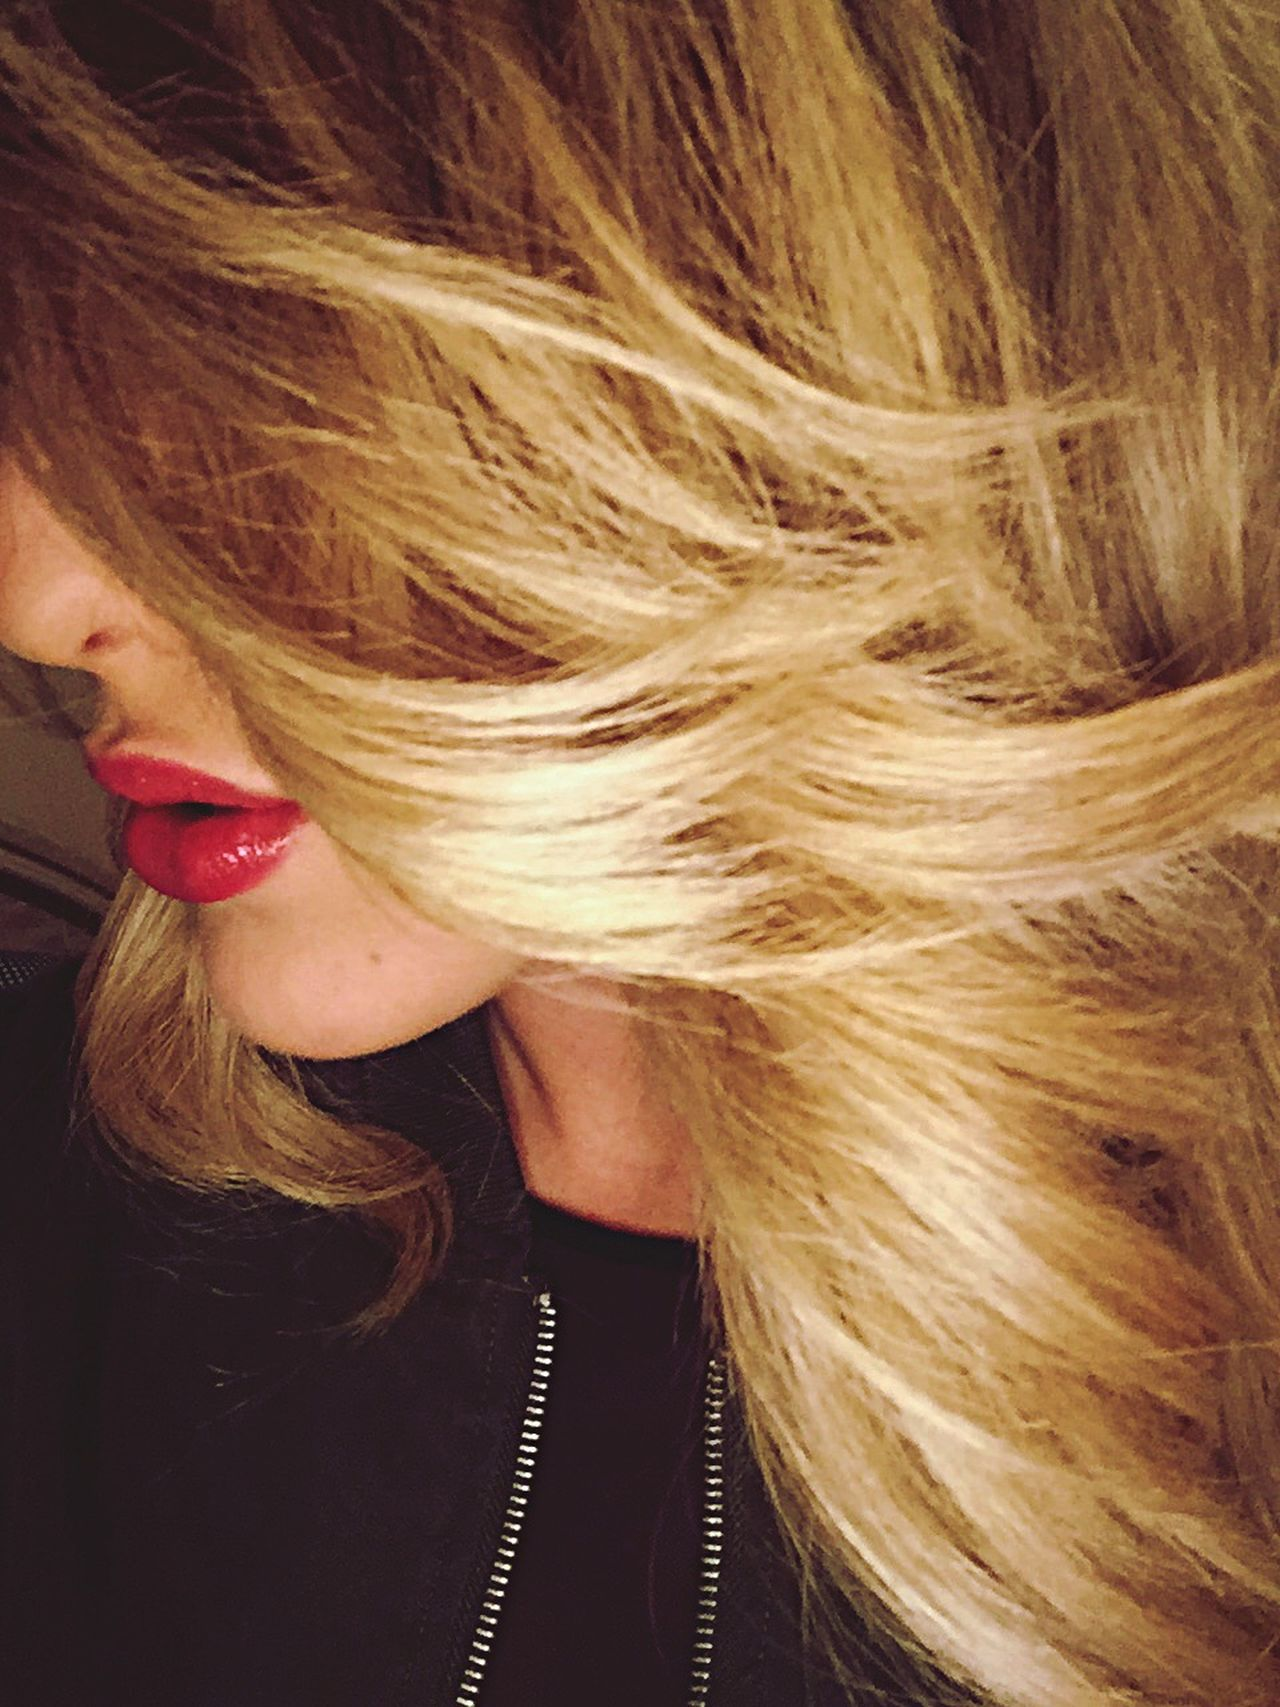 Hair Hair Style Blonde Blonde Girl Girl Lips Lipstick Hairstylist Profile Profile Picture Red Lips Zipper Look Down Hairstyle Haircolor Photooftheday Me Myself And I